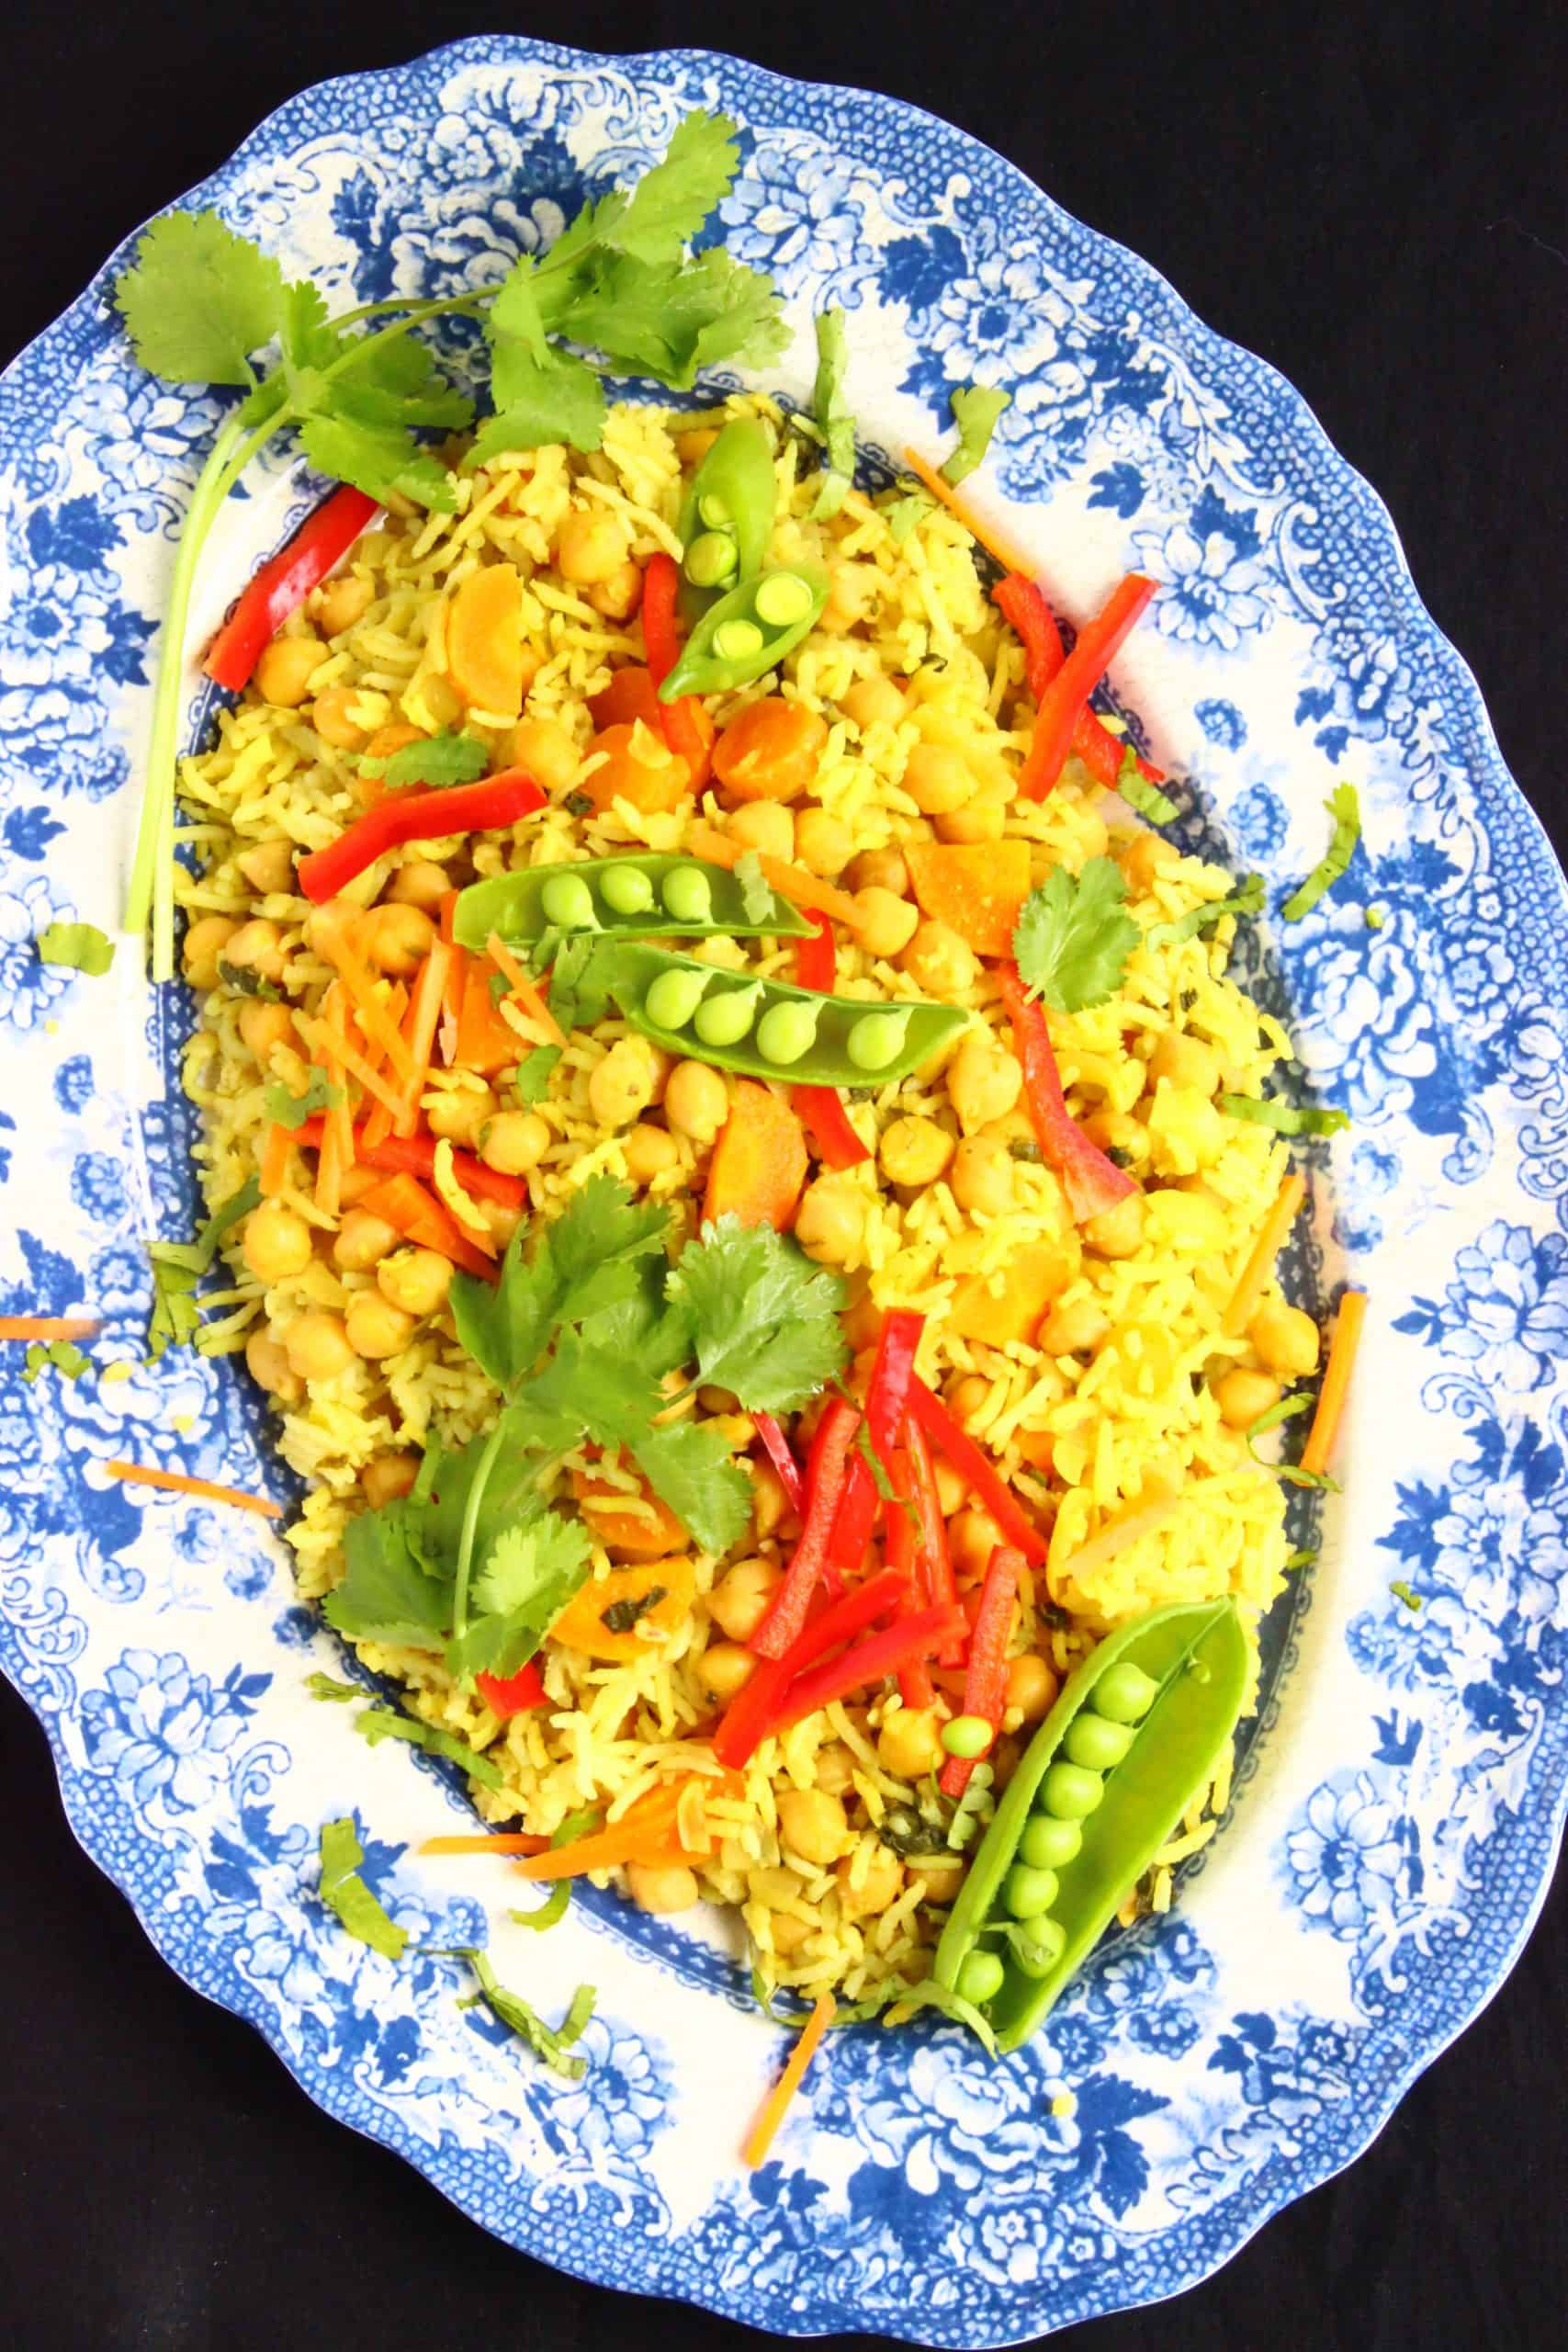 Chickpea kedgeree with rice and vegetables on a blue plate